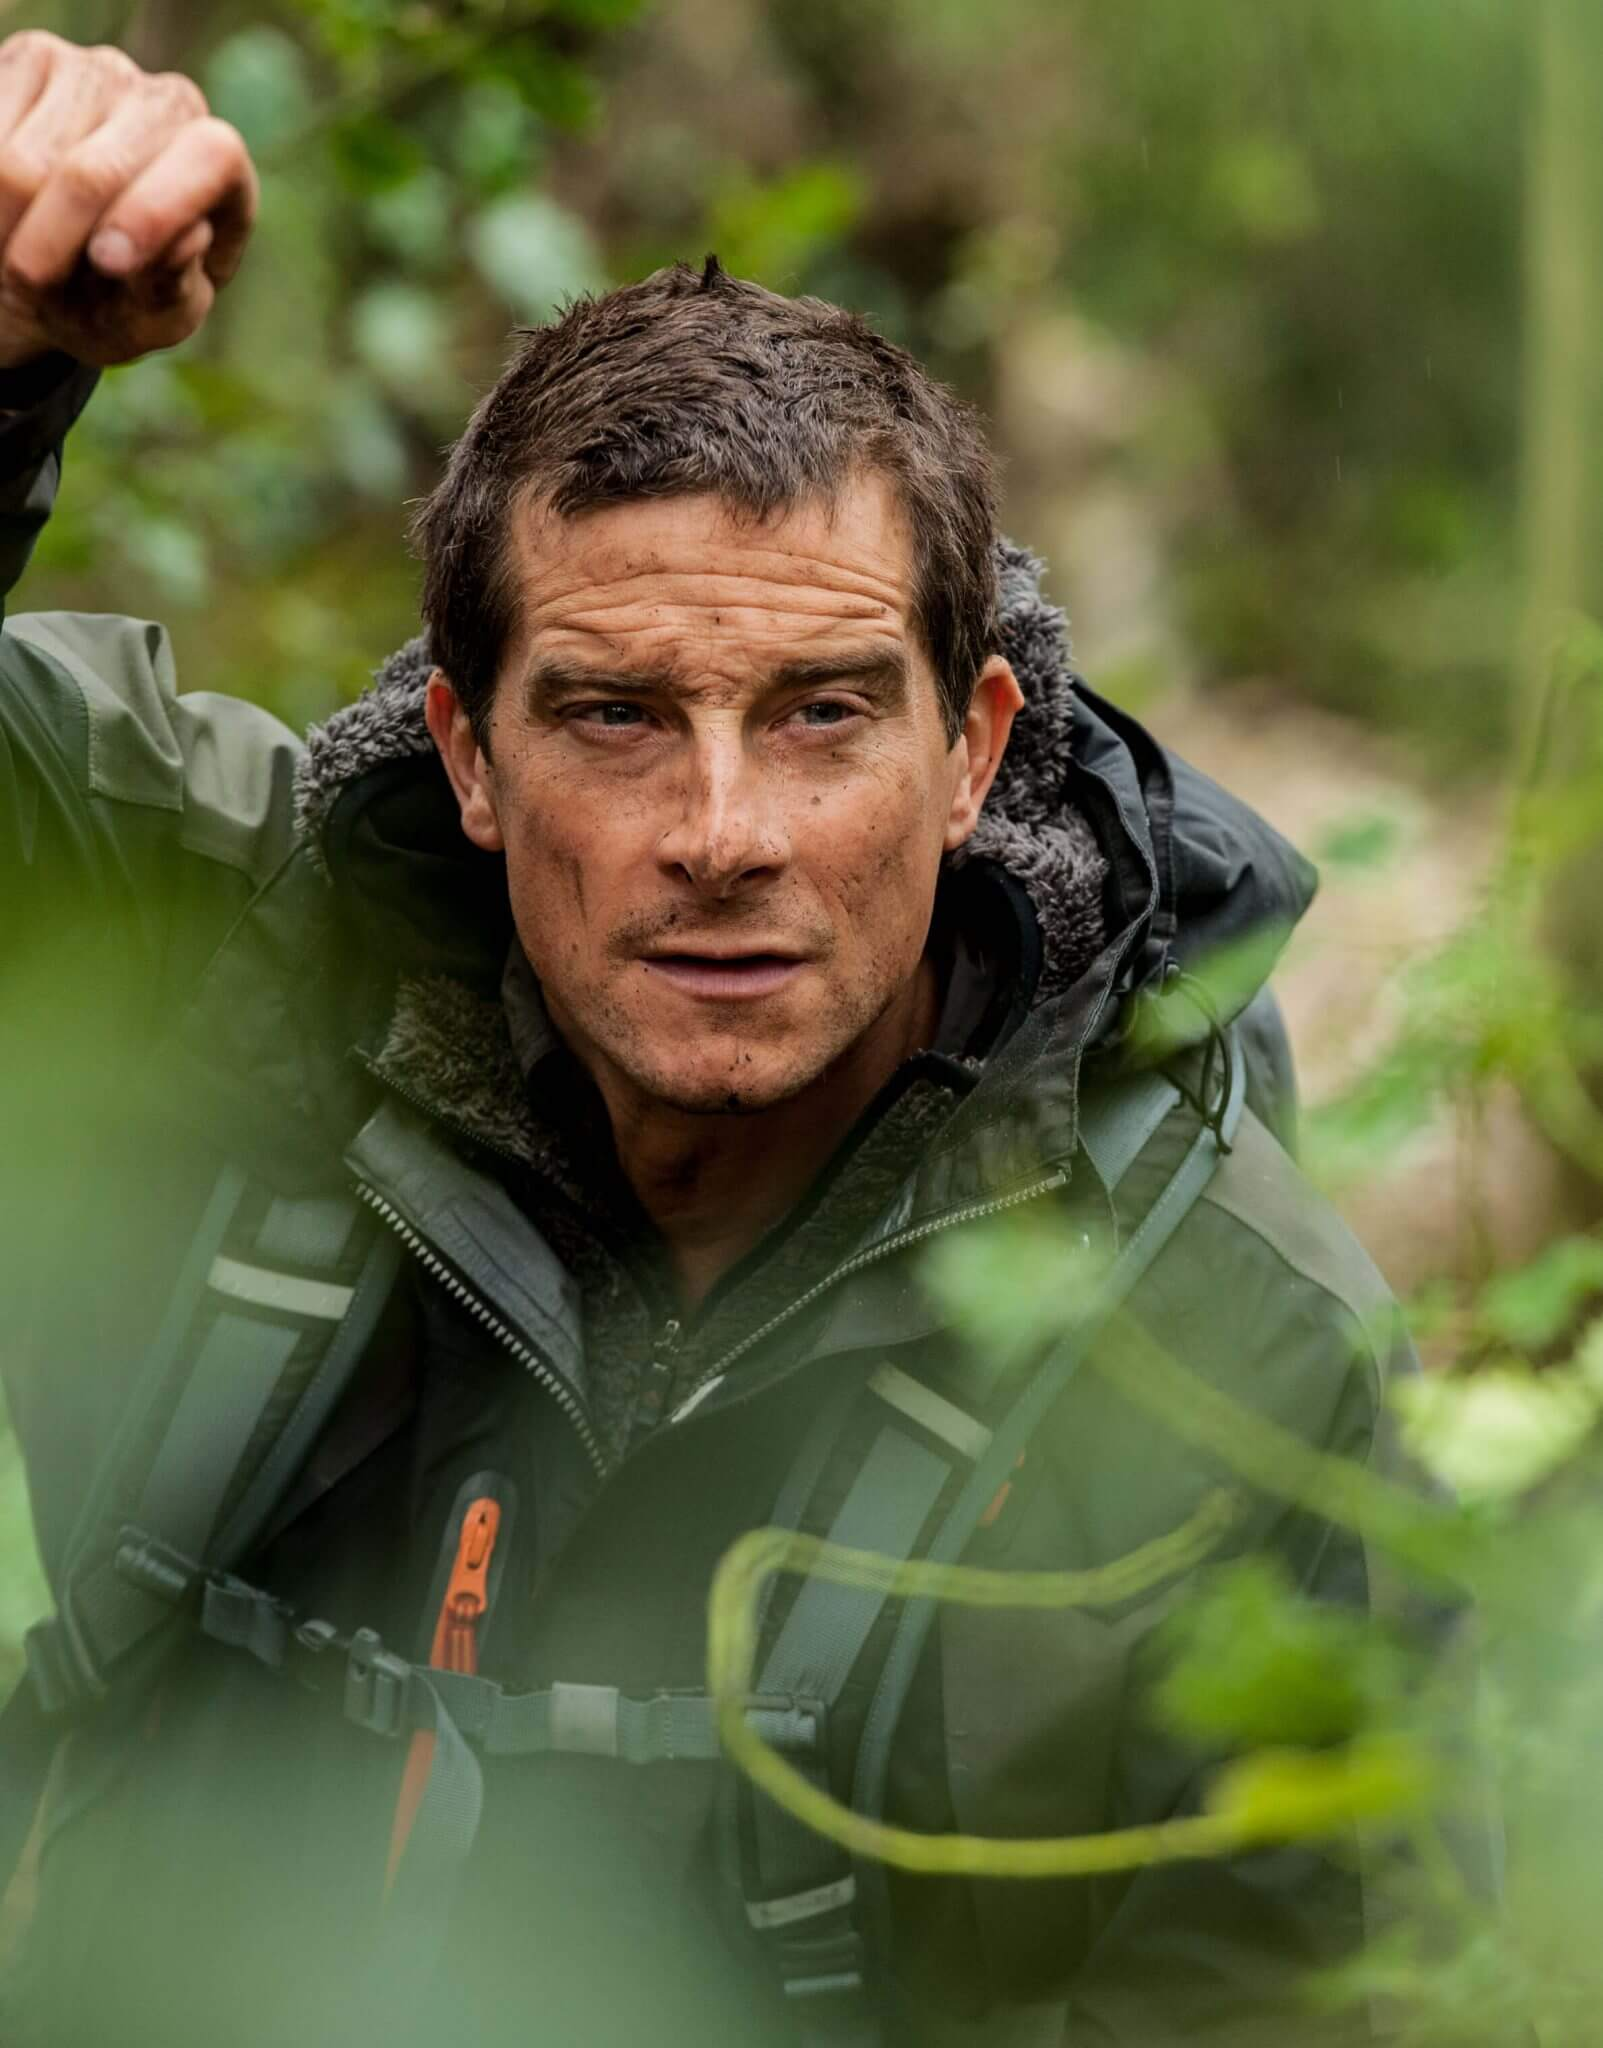 bear grylls survial acadamy the ultimate team building experience